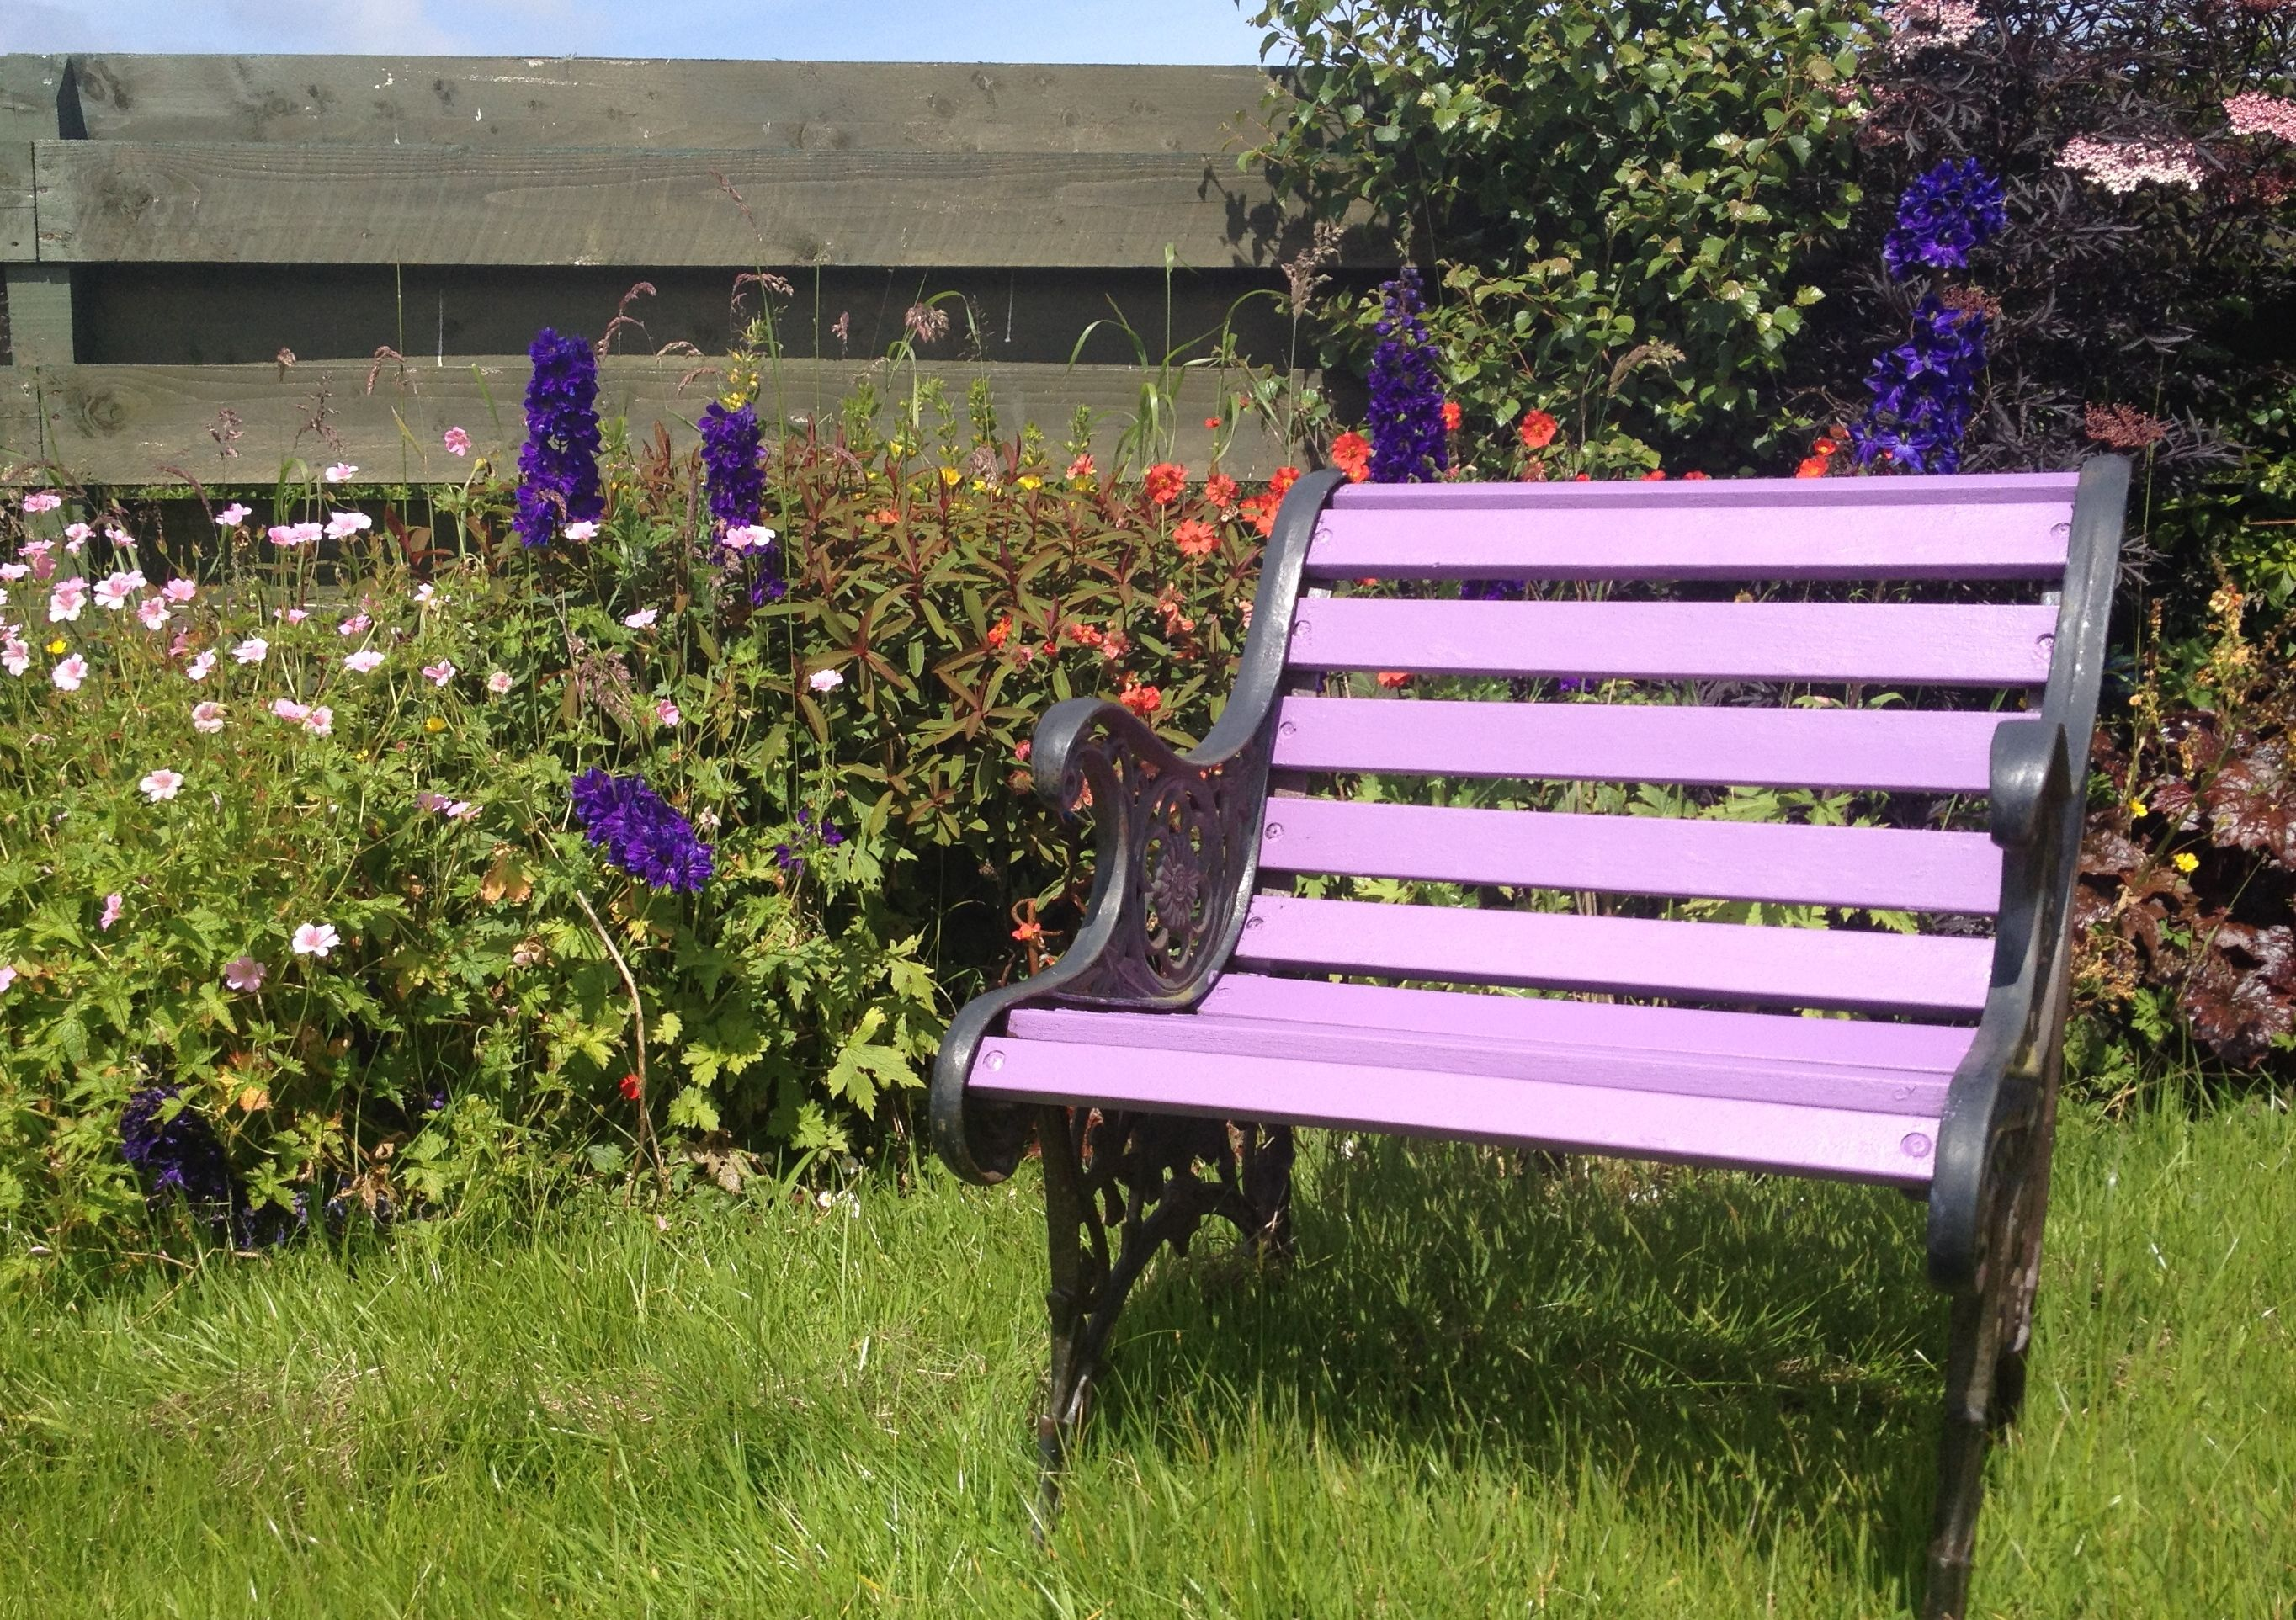 Pleasing Cuprinol Garden Shades Purple Pansy Garden Furniture Ncnpc Chair Design For Home Ncnpcorg